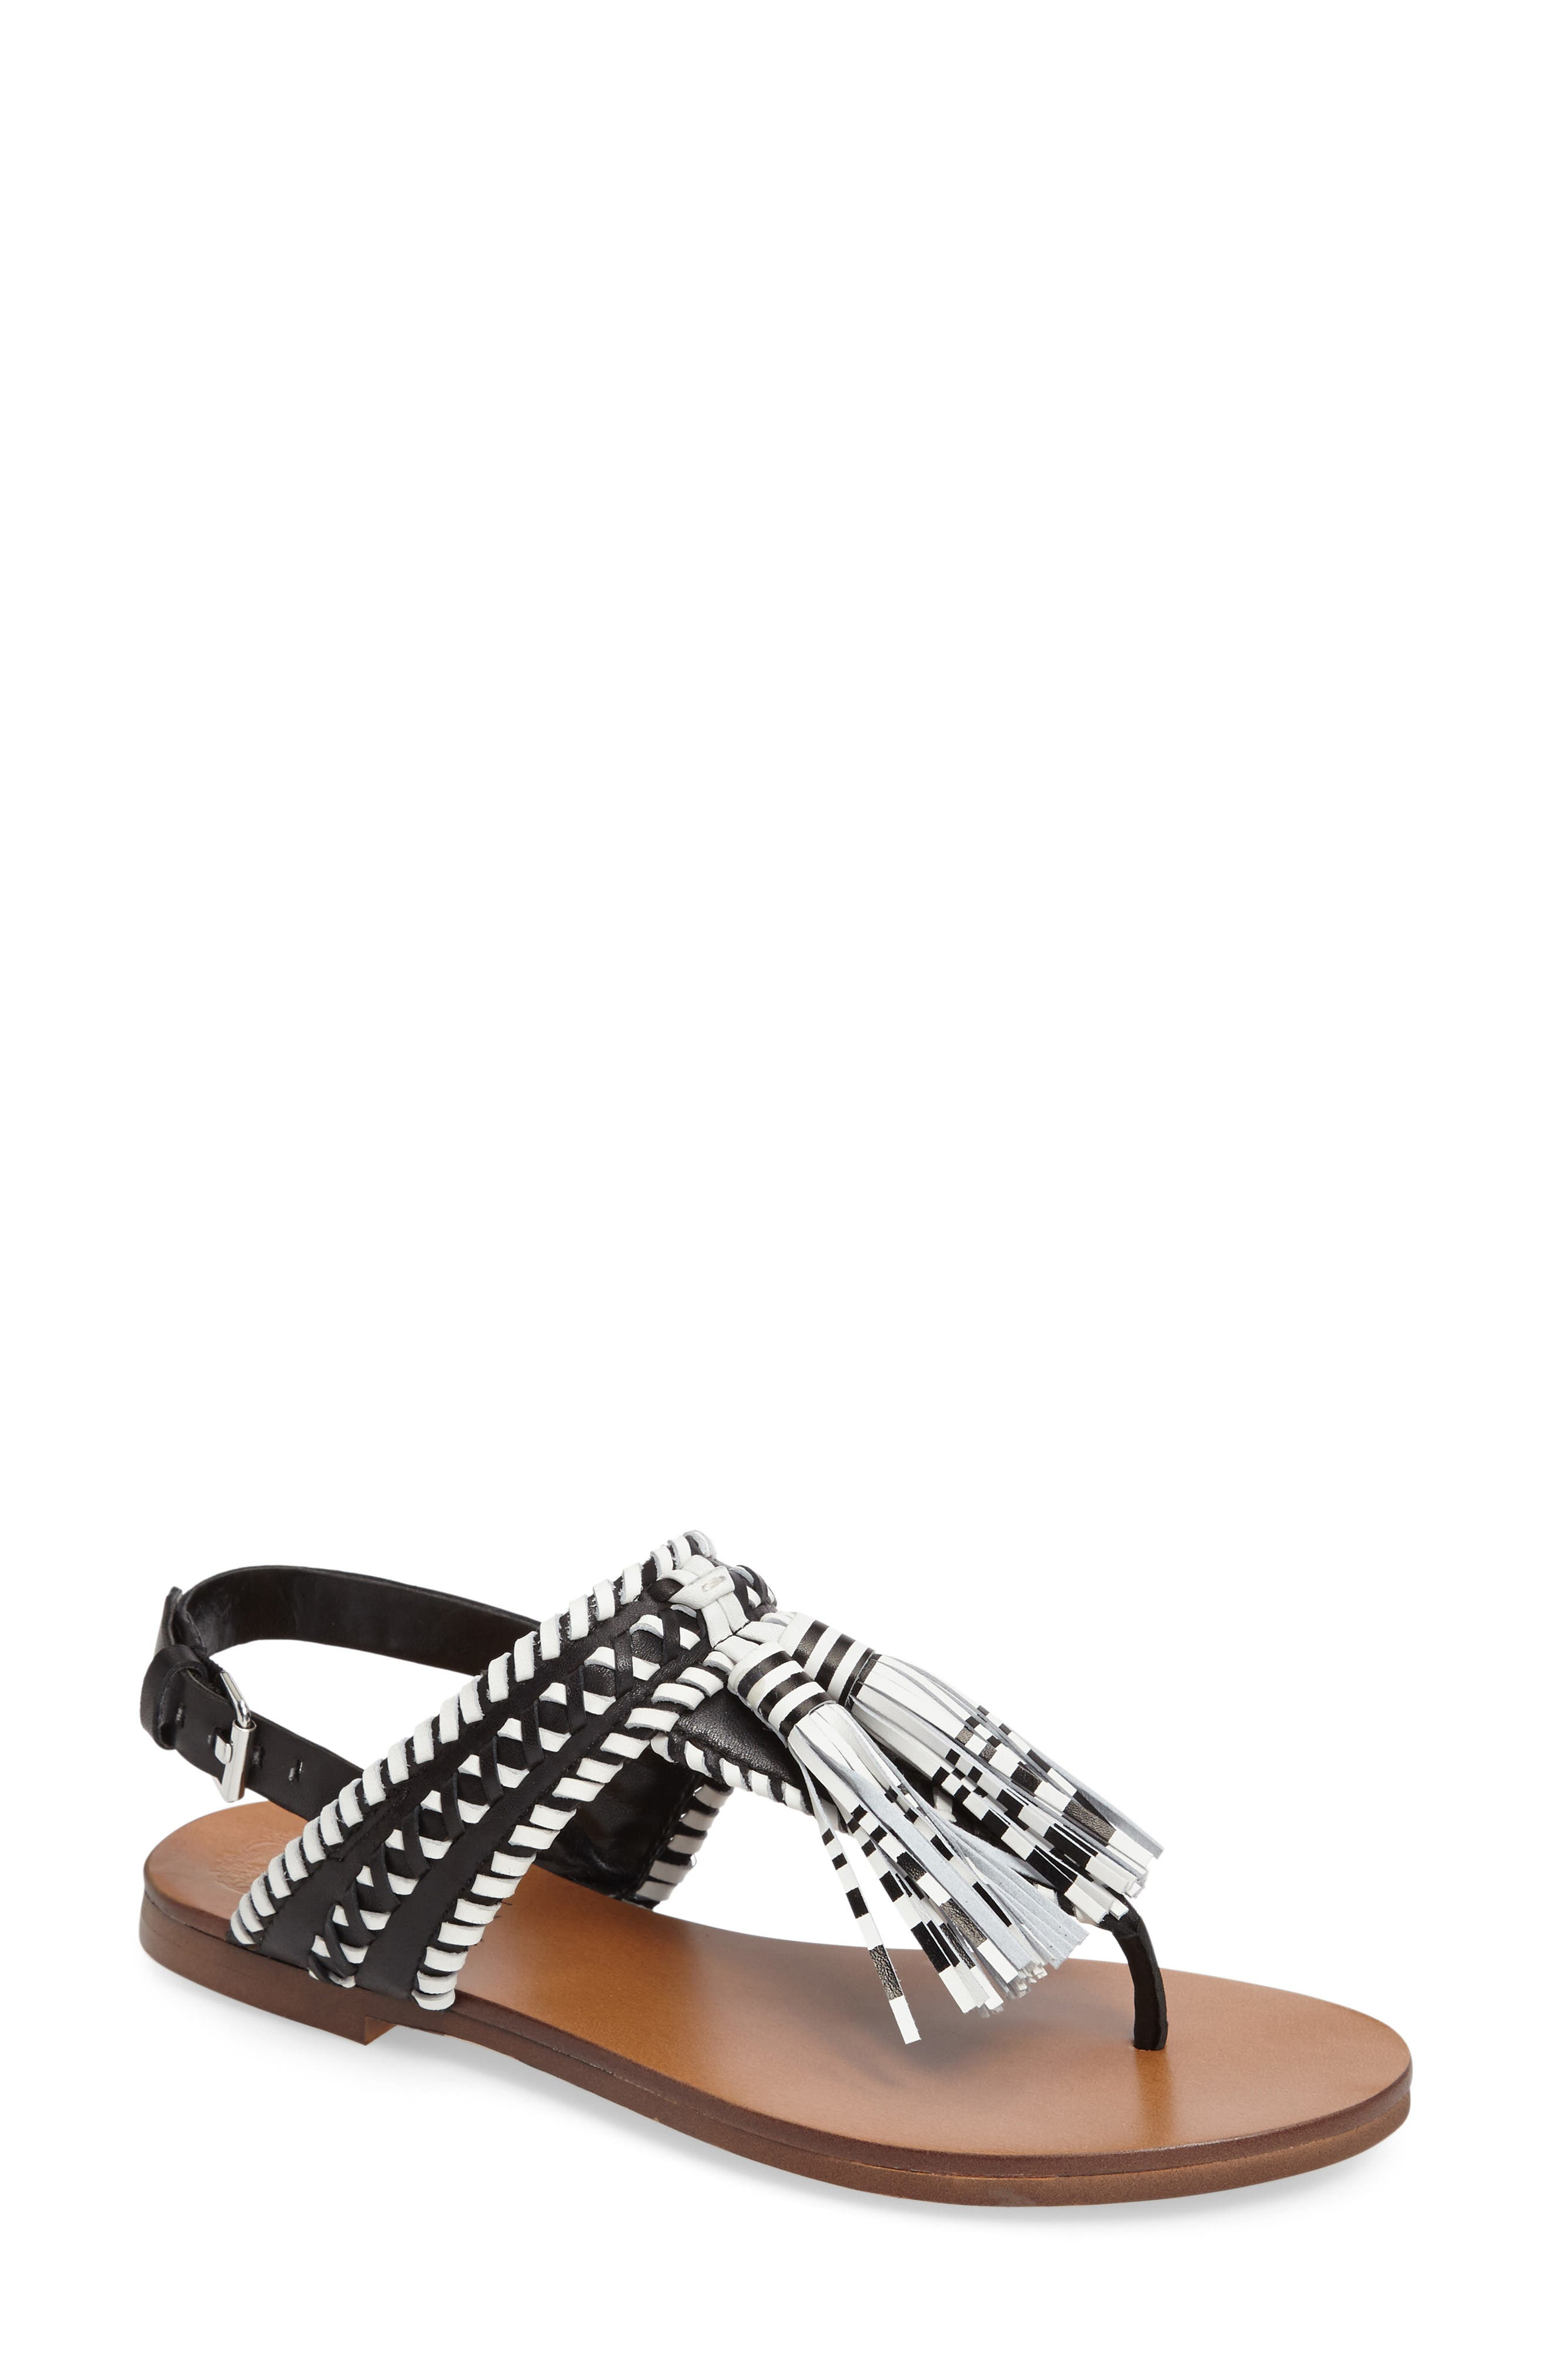 Rebeka Sandal,                         Main,                         color, 002